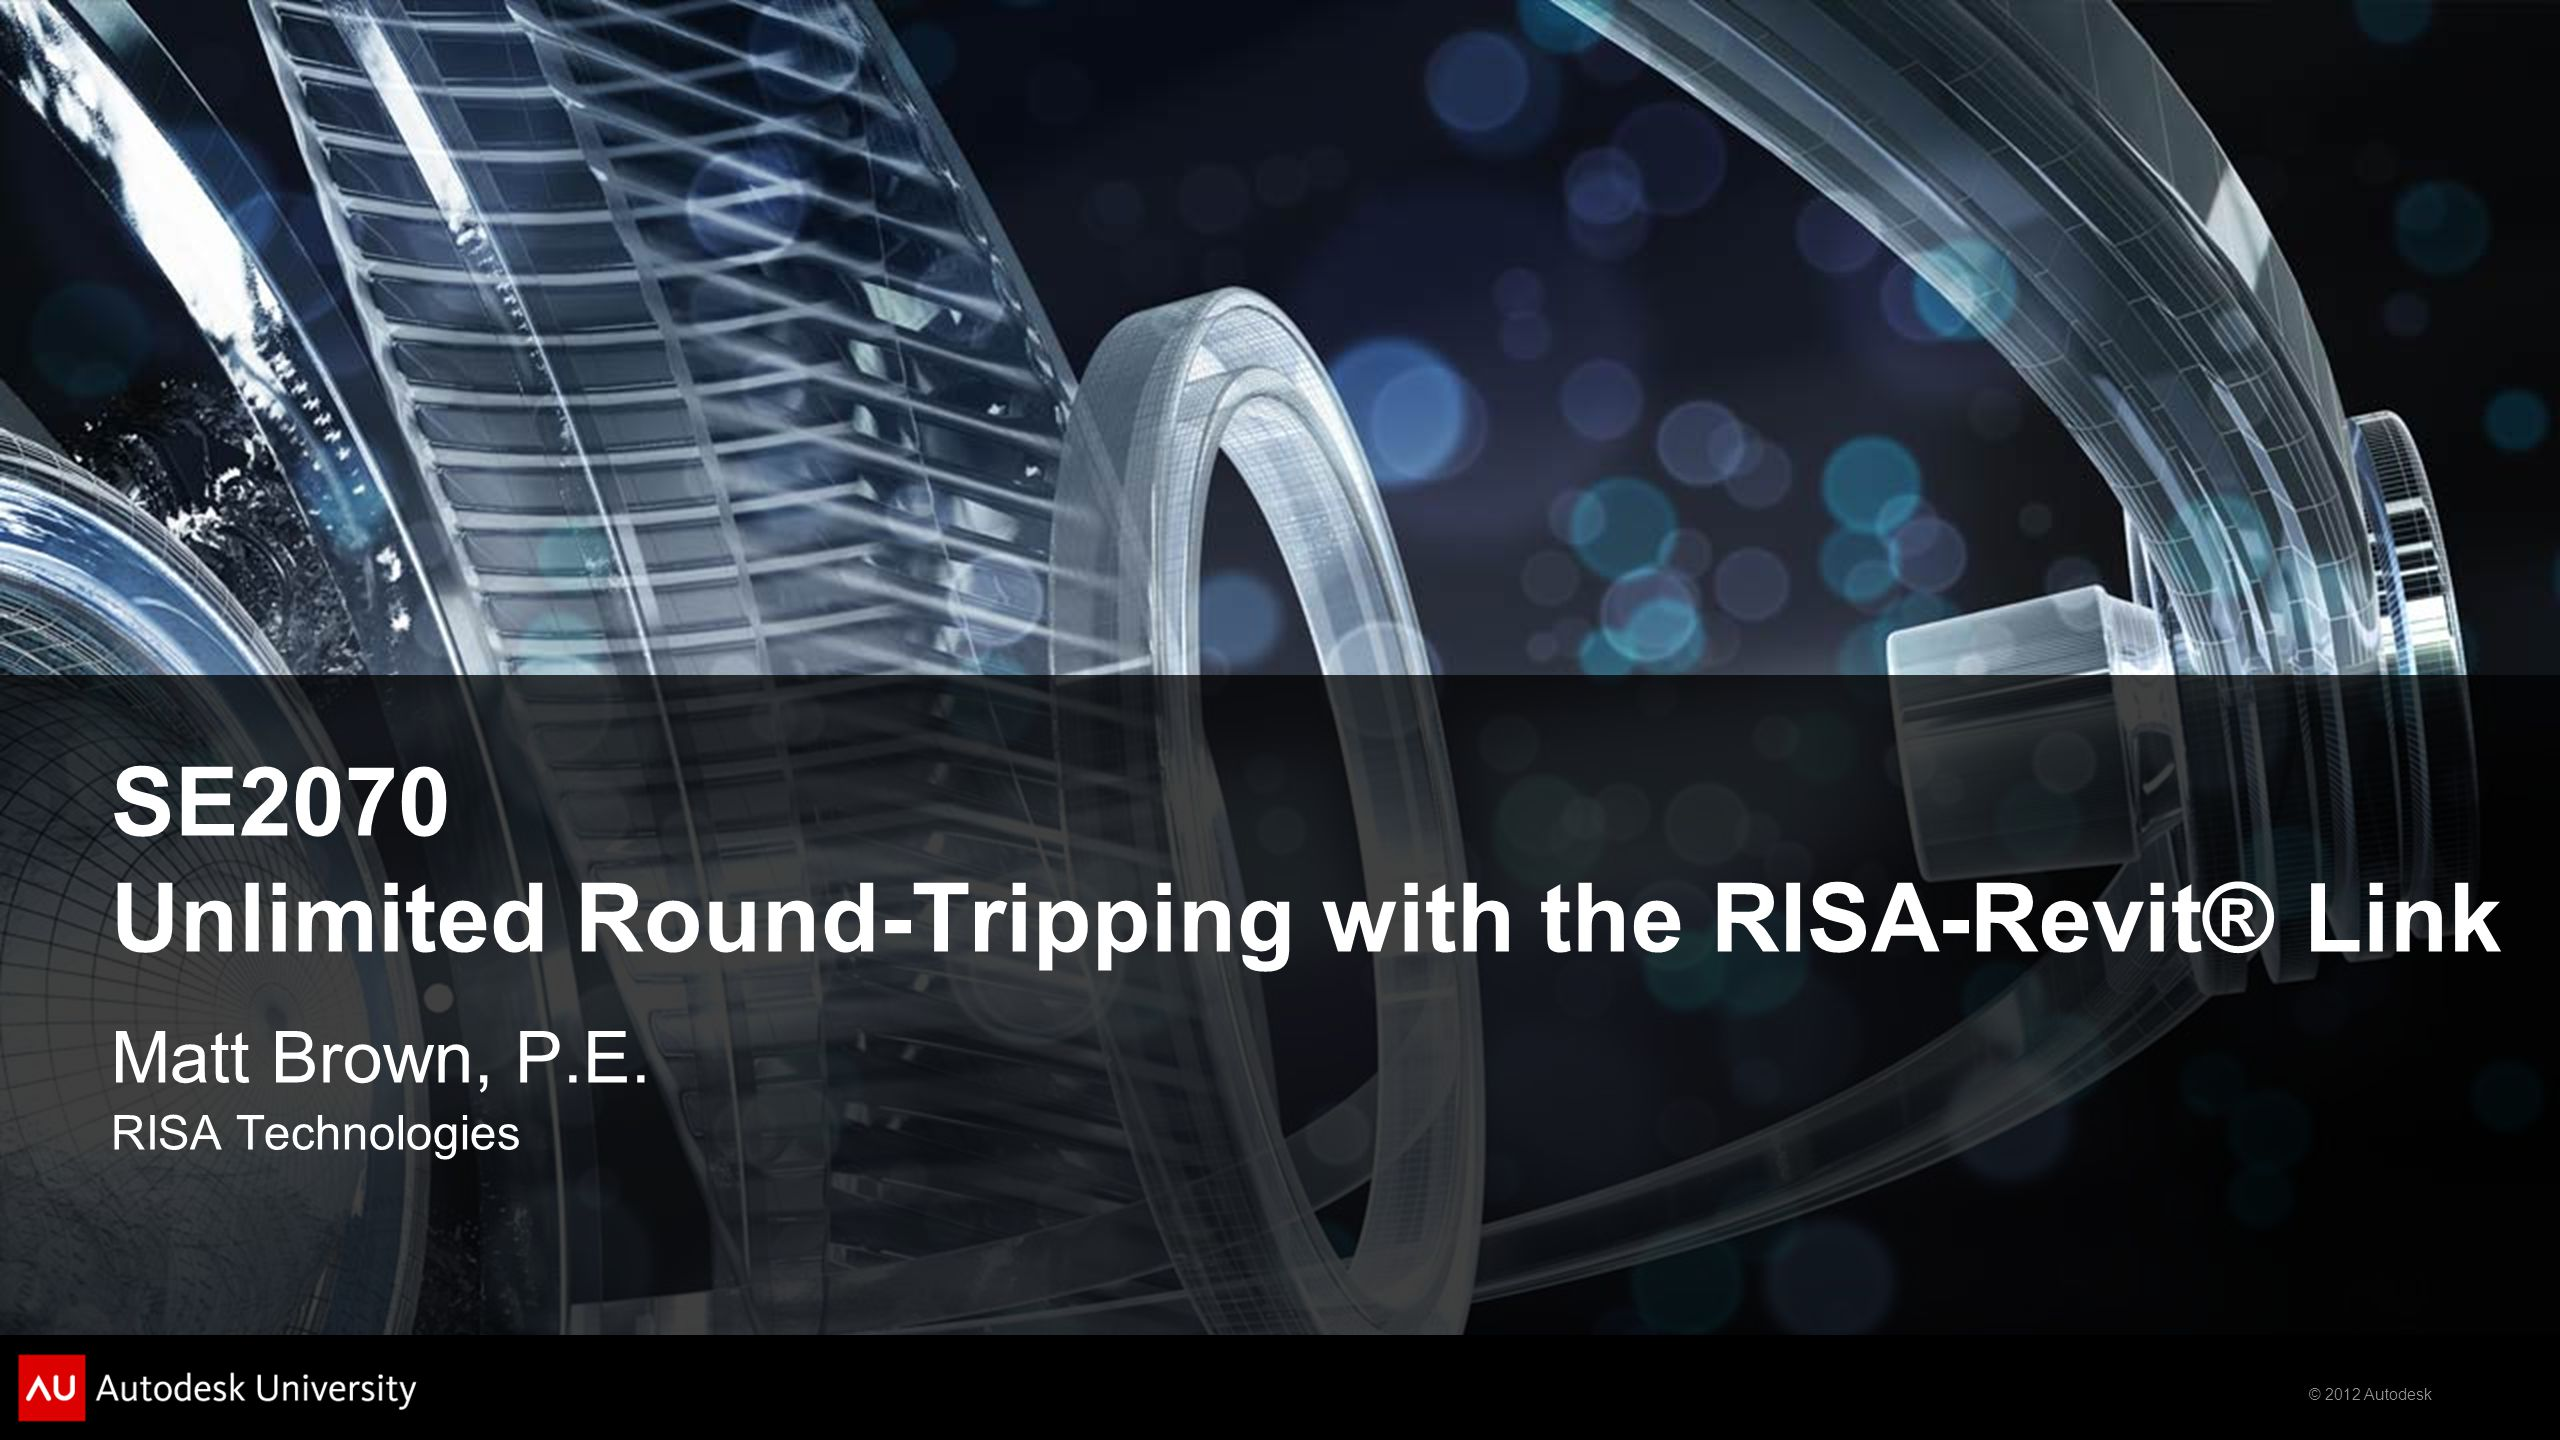 © 2012 Autodesk SE2070 Unlimited Round-Tripping with the RISA-Revit® Link Matt Brown, P.E. RISA Technologies